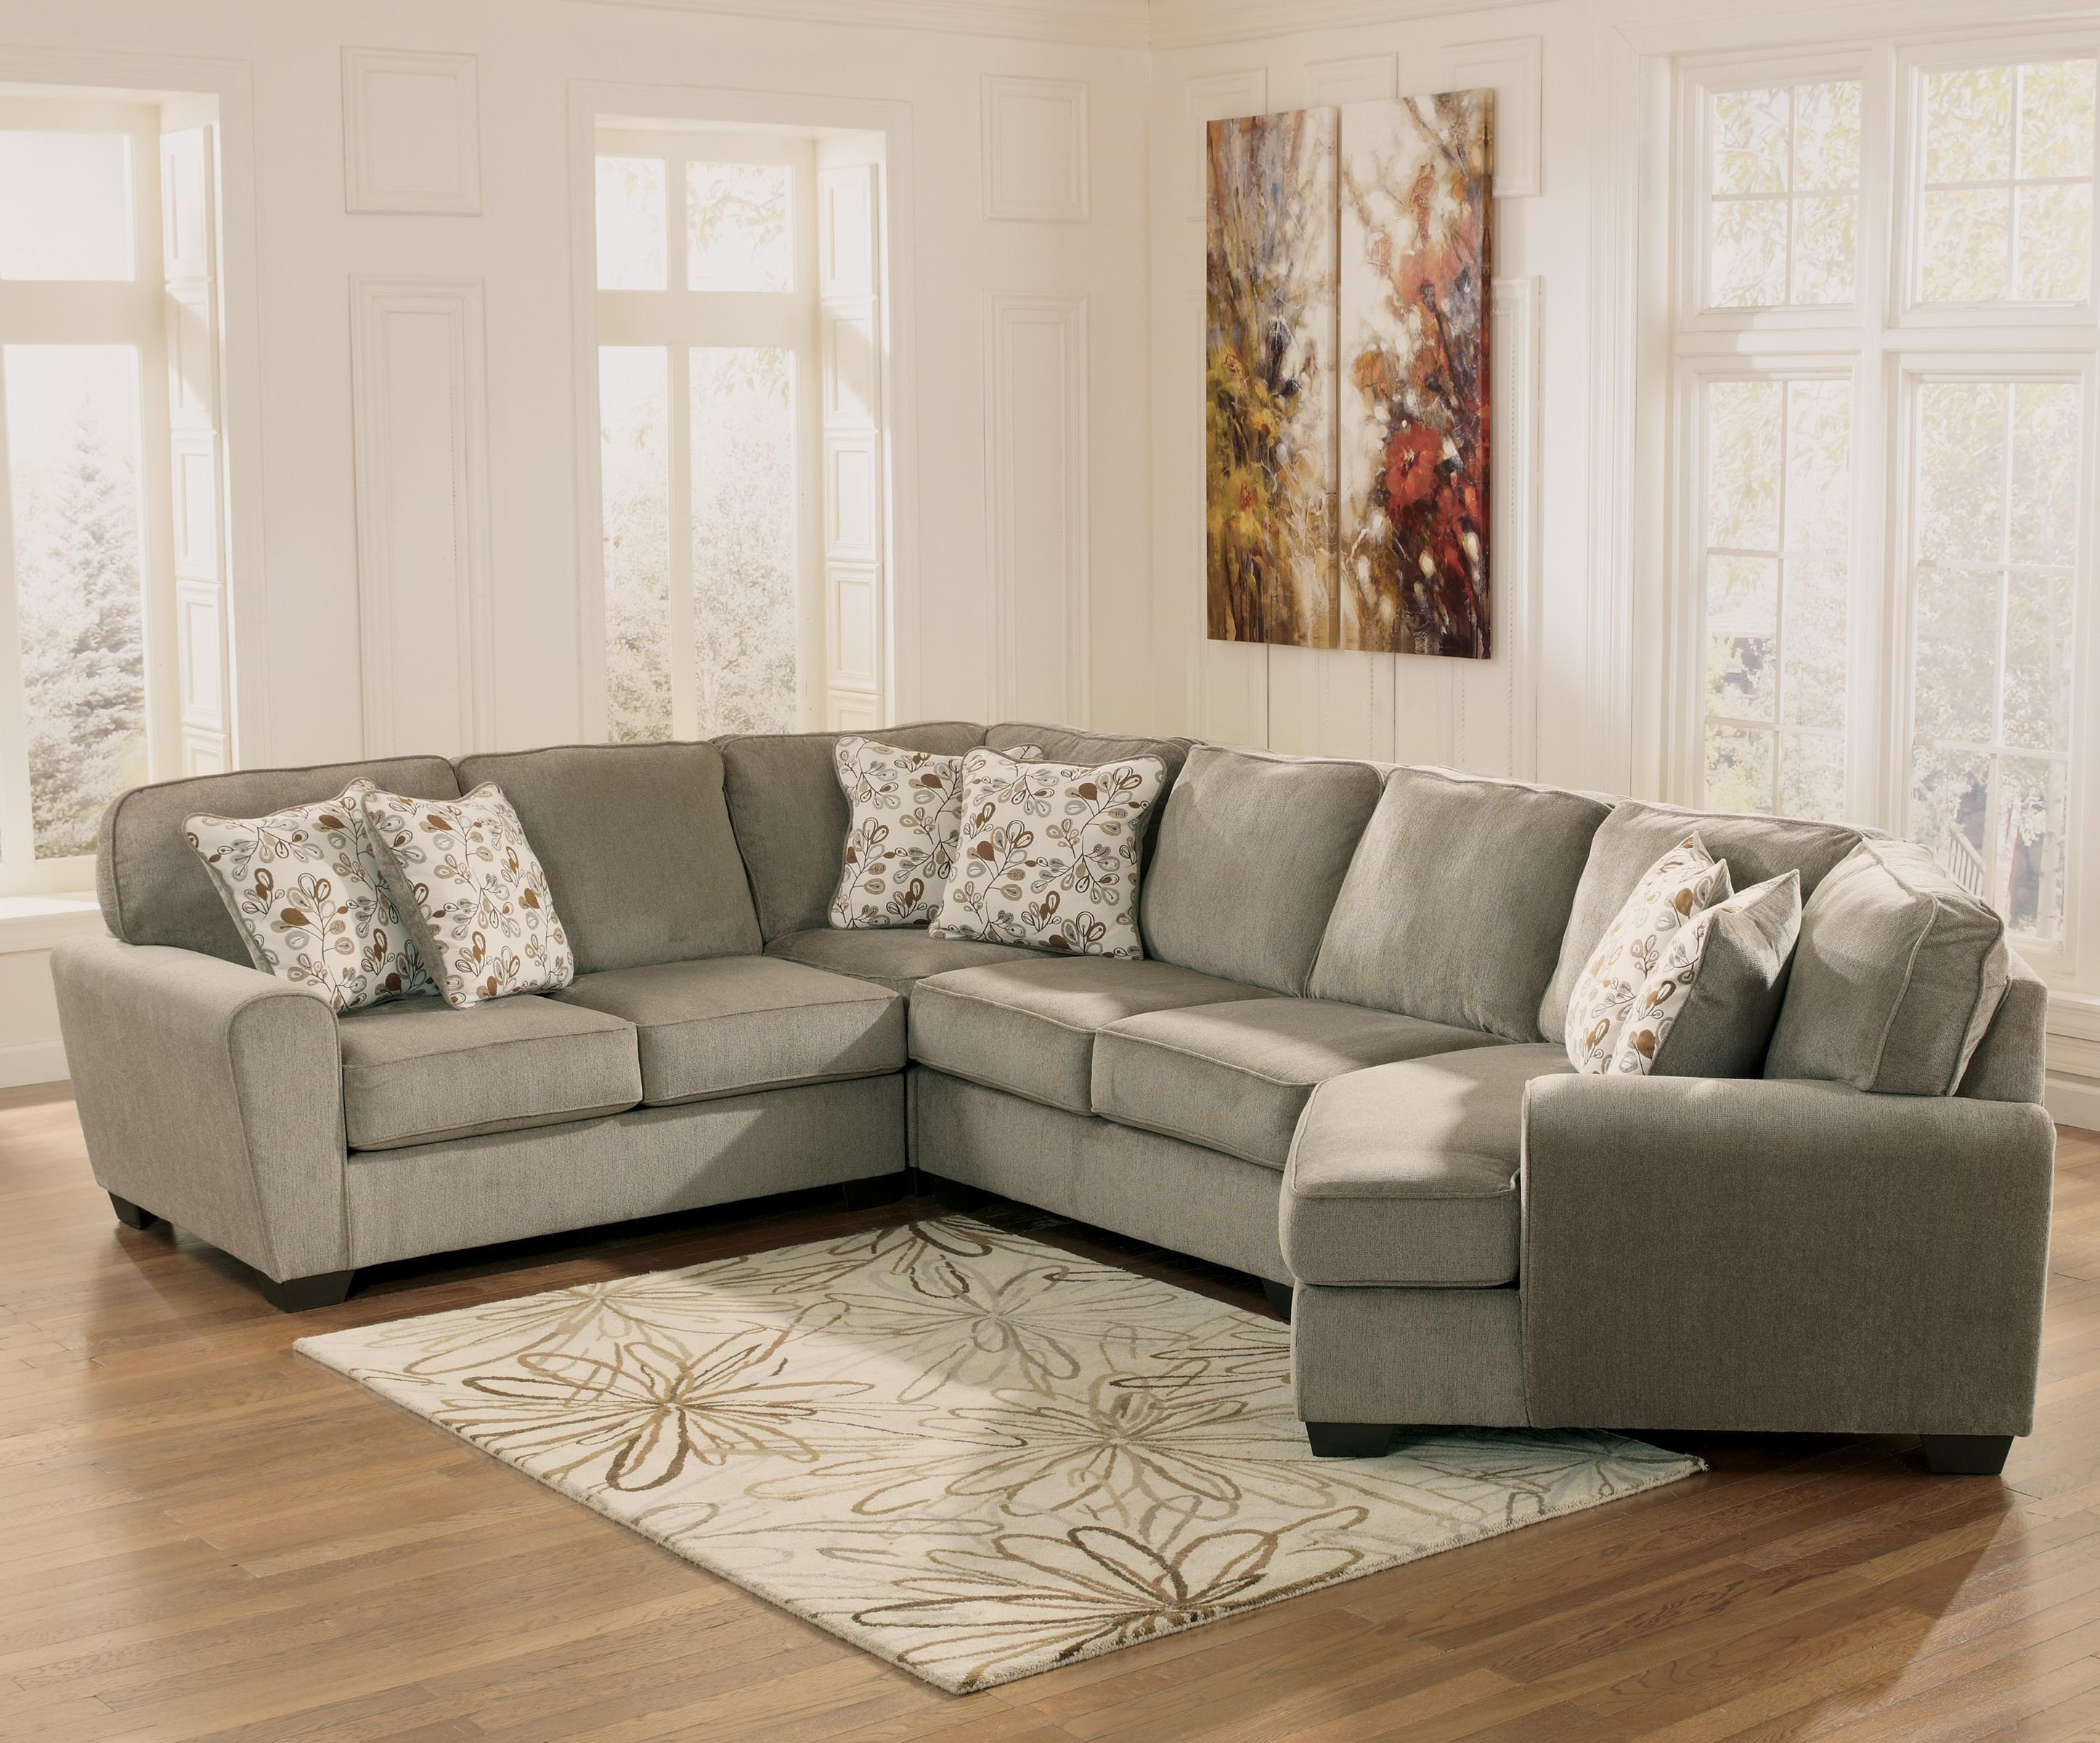 Gentil Ashley Furniture Patina4 Piece Small Sectional With Right Cuddler ...